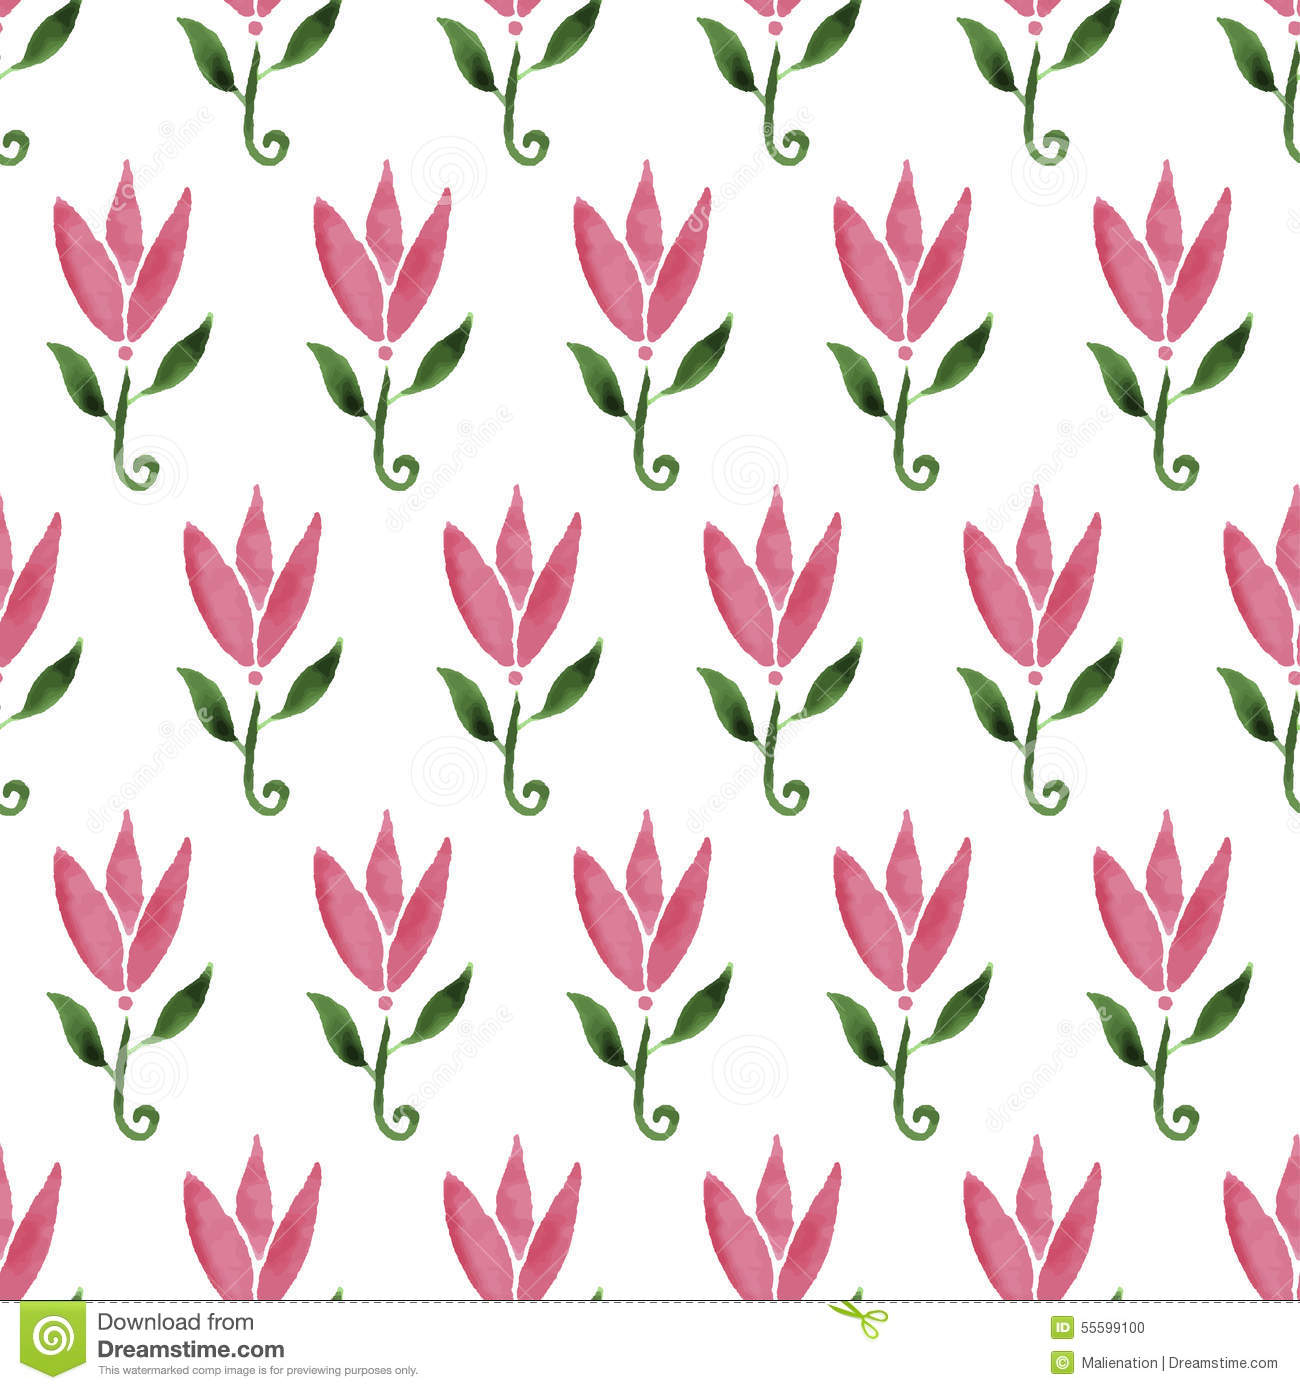 Pink Watercolor Cartoon Flower Tulip Hand Drawn Seamless Pattern